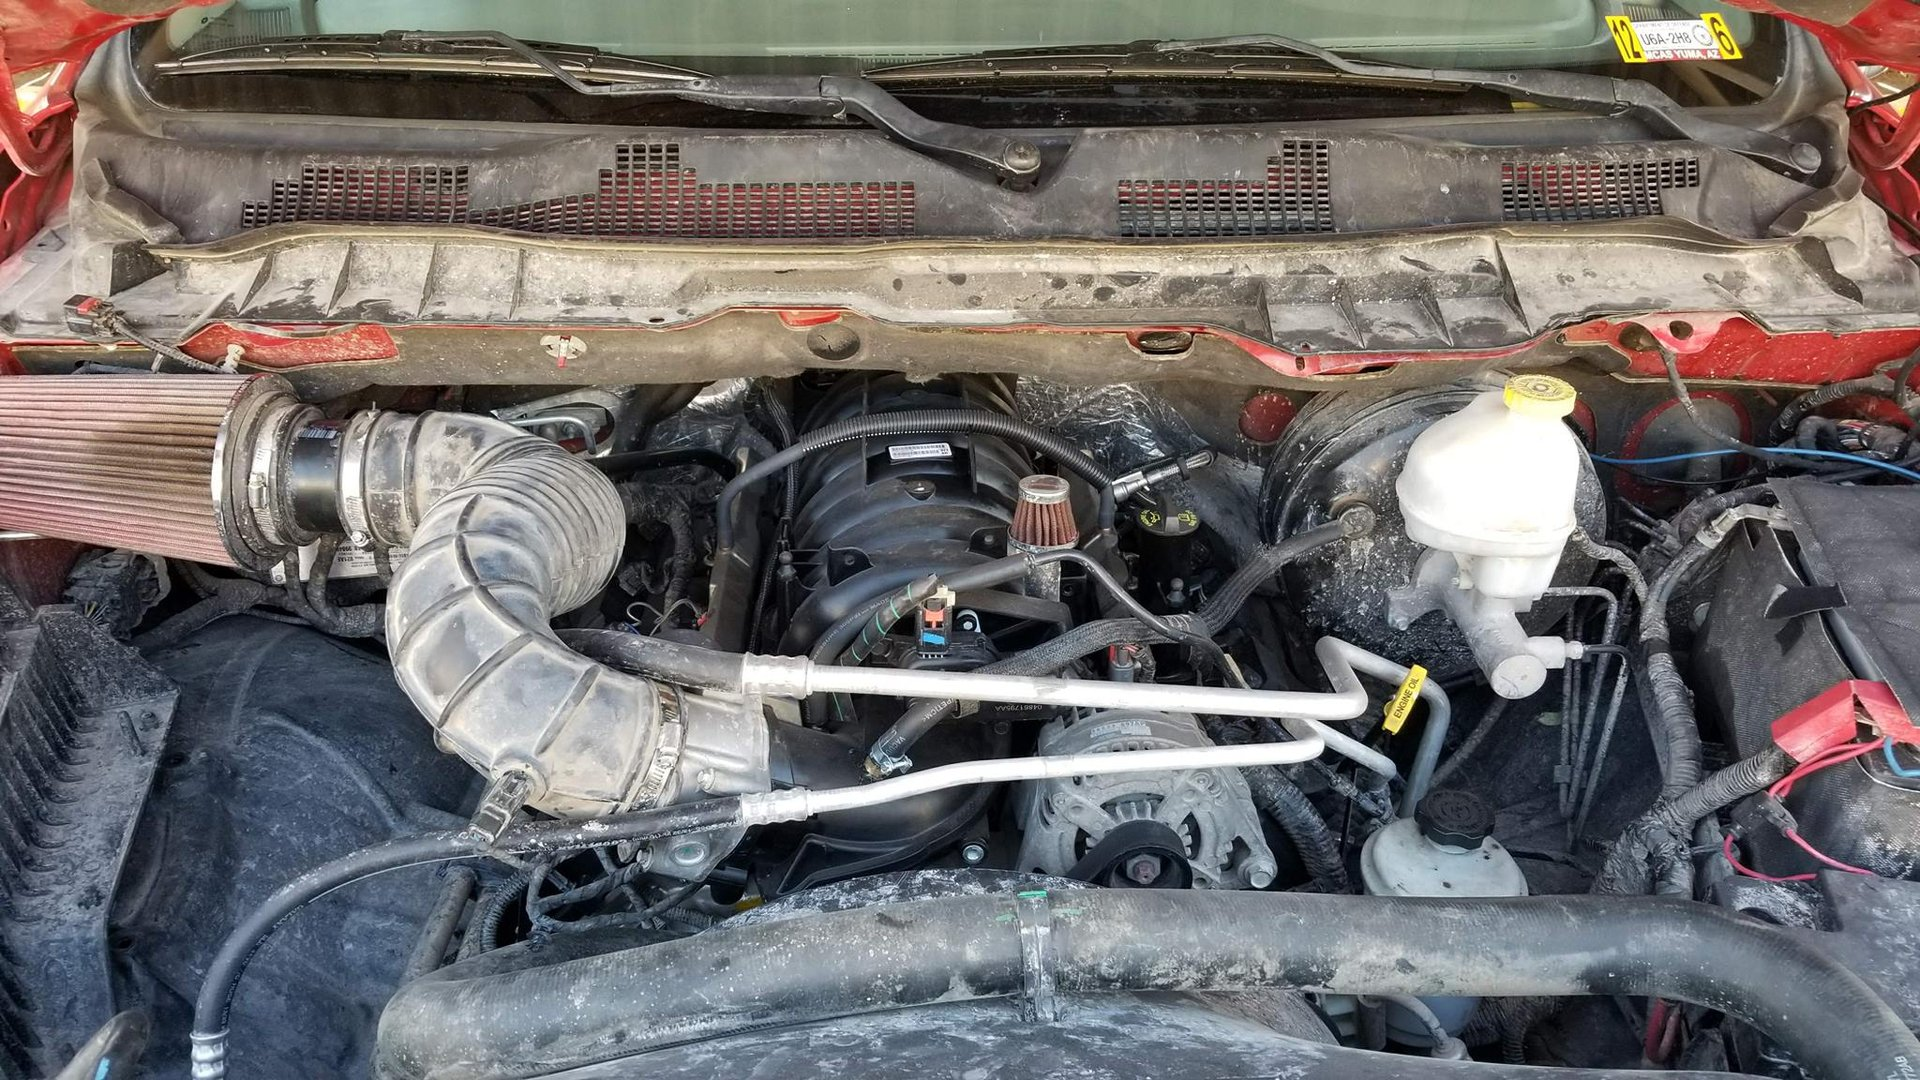 5 7 to 6 4 swap with pictures | DODGE RAM FORUM